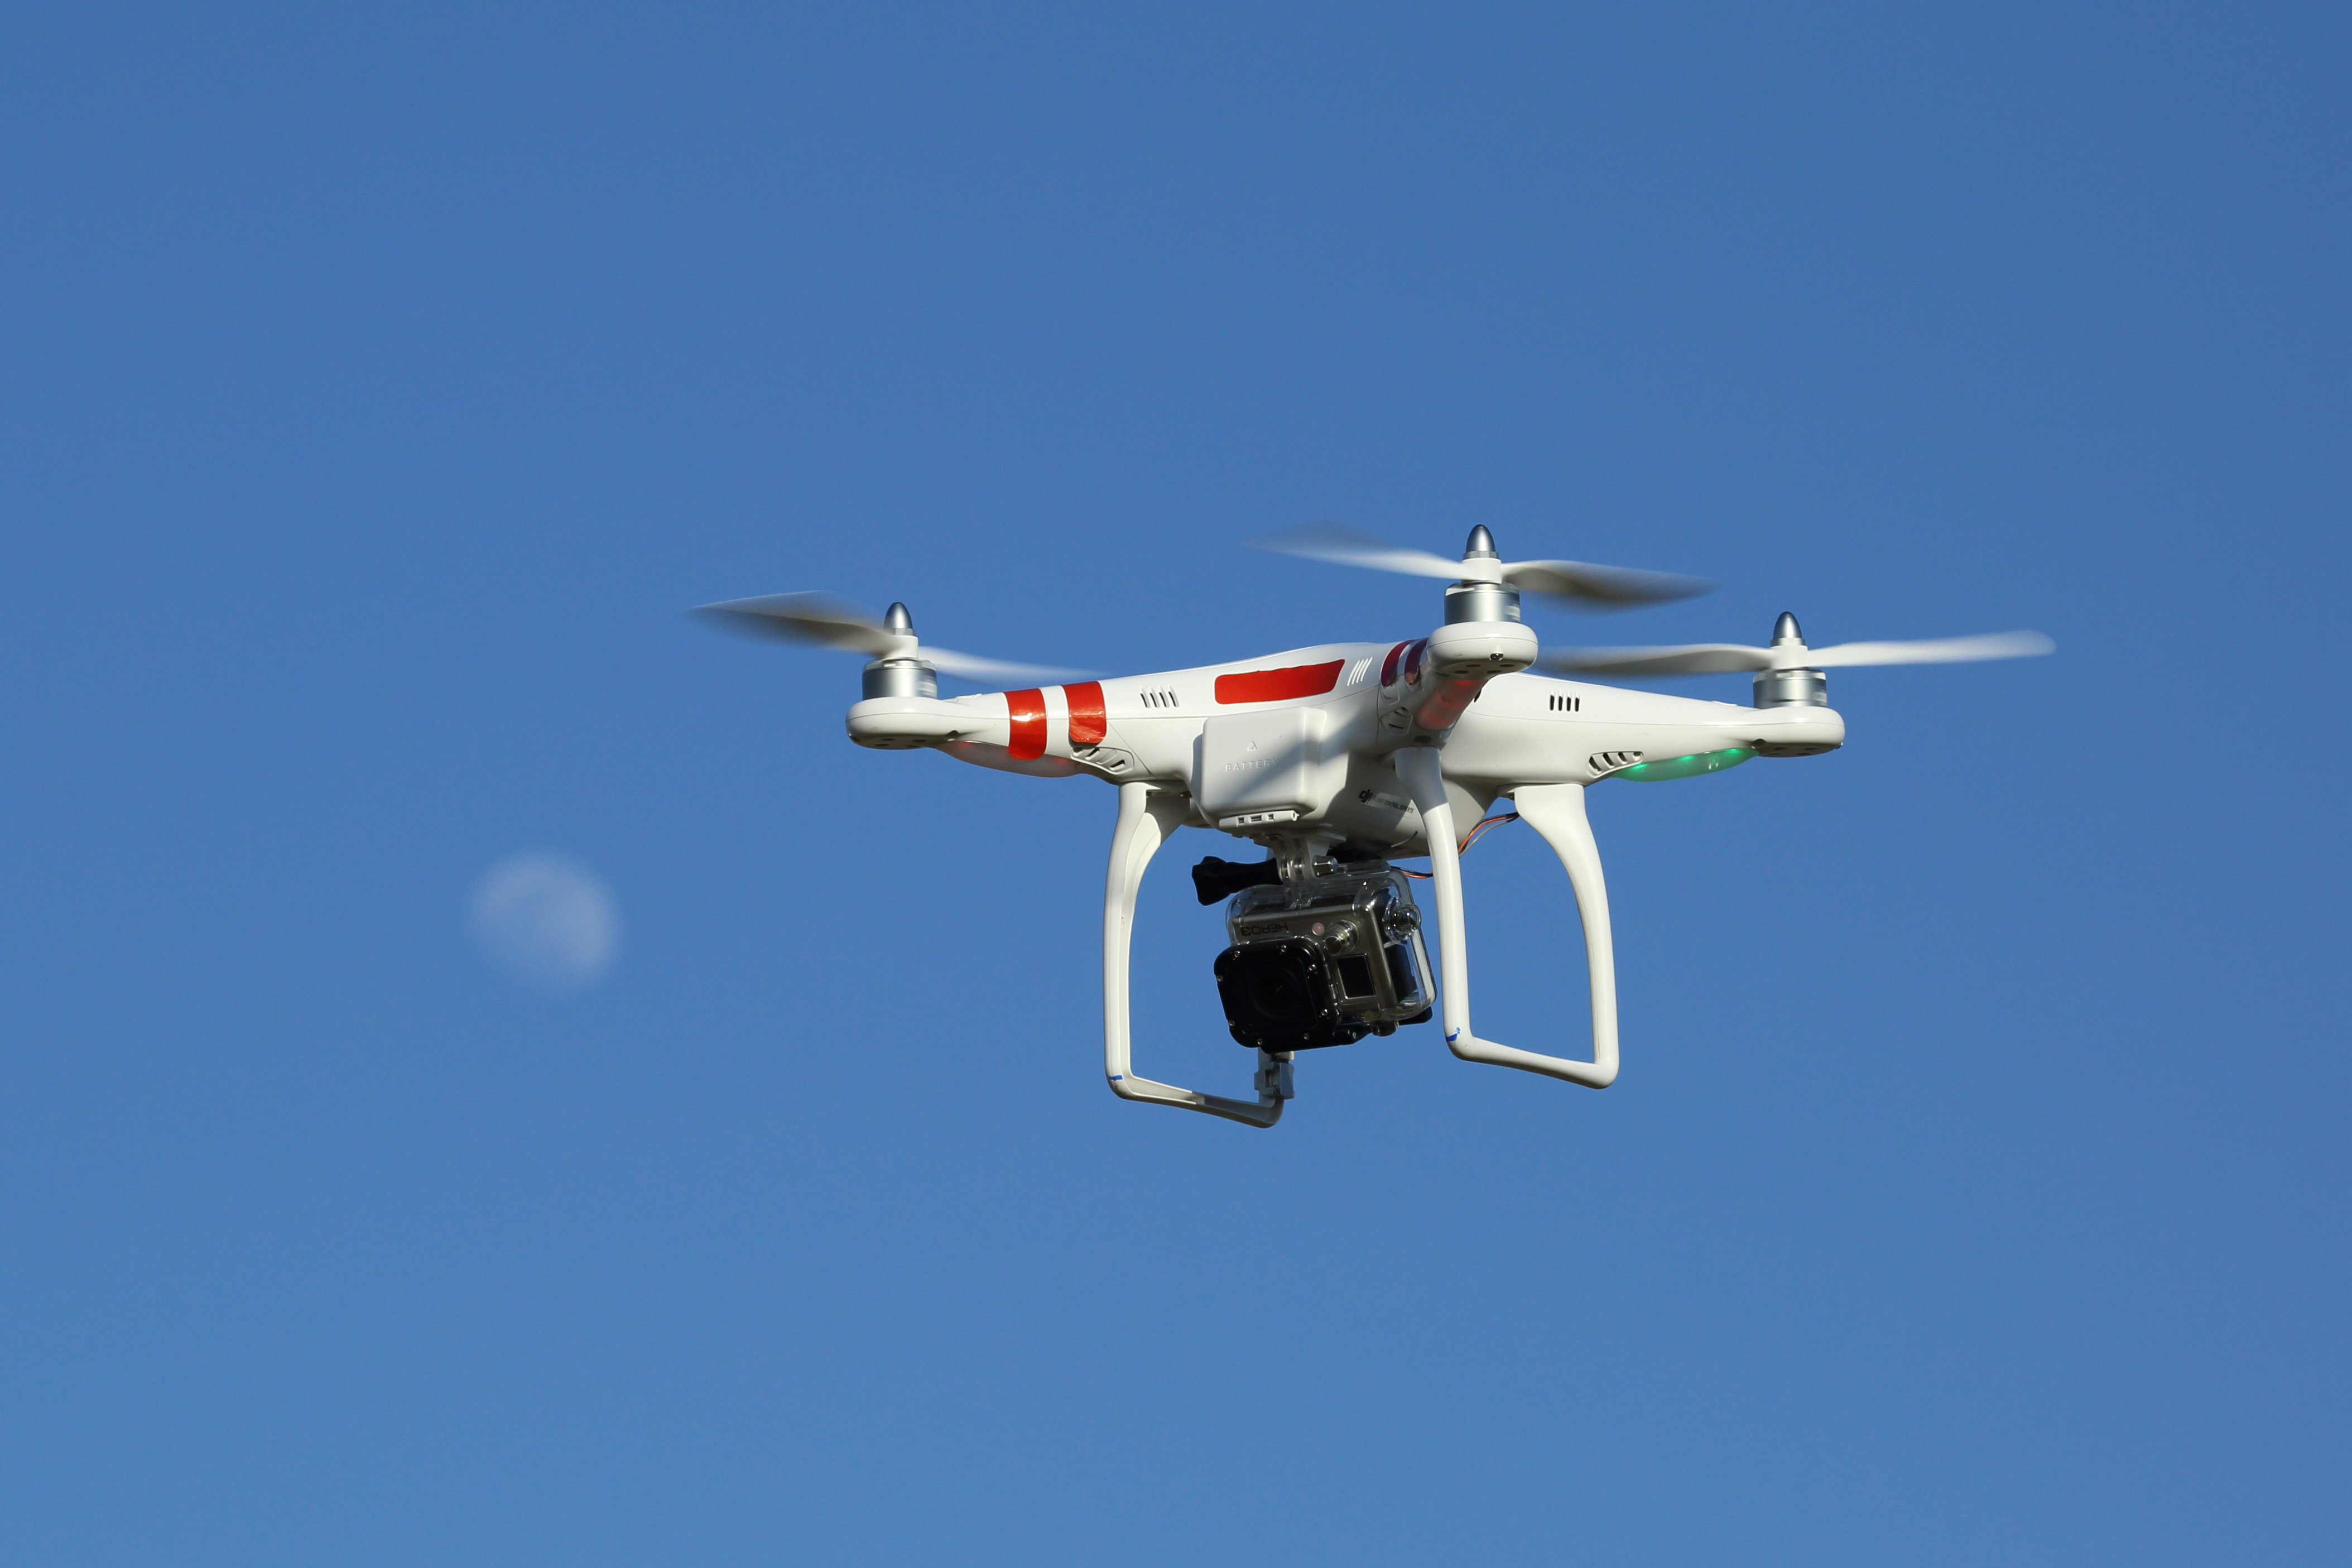 Aviation Drone Class to be held in Murfreesboro